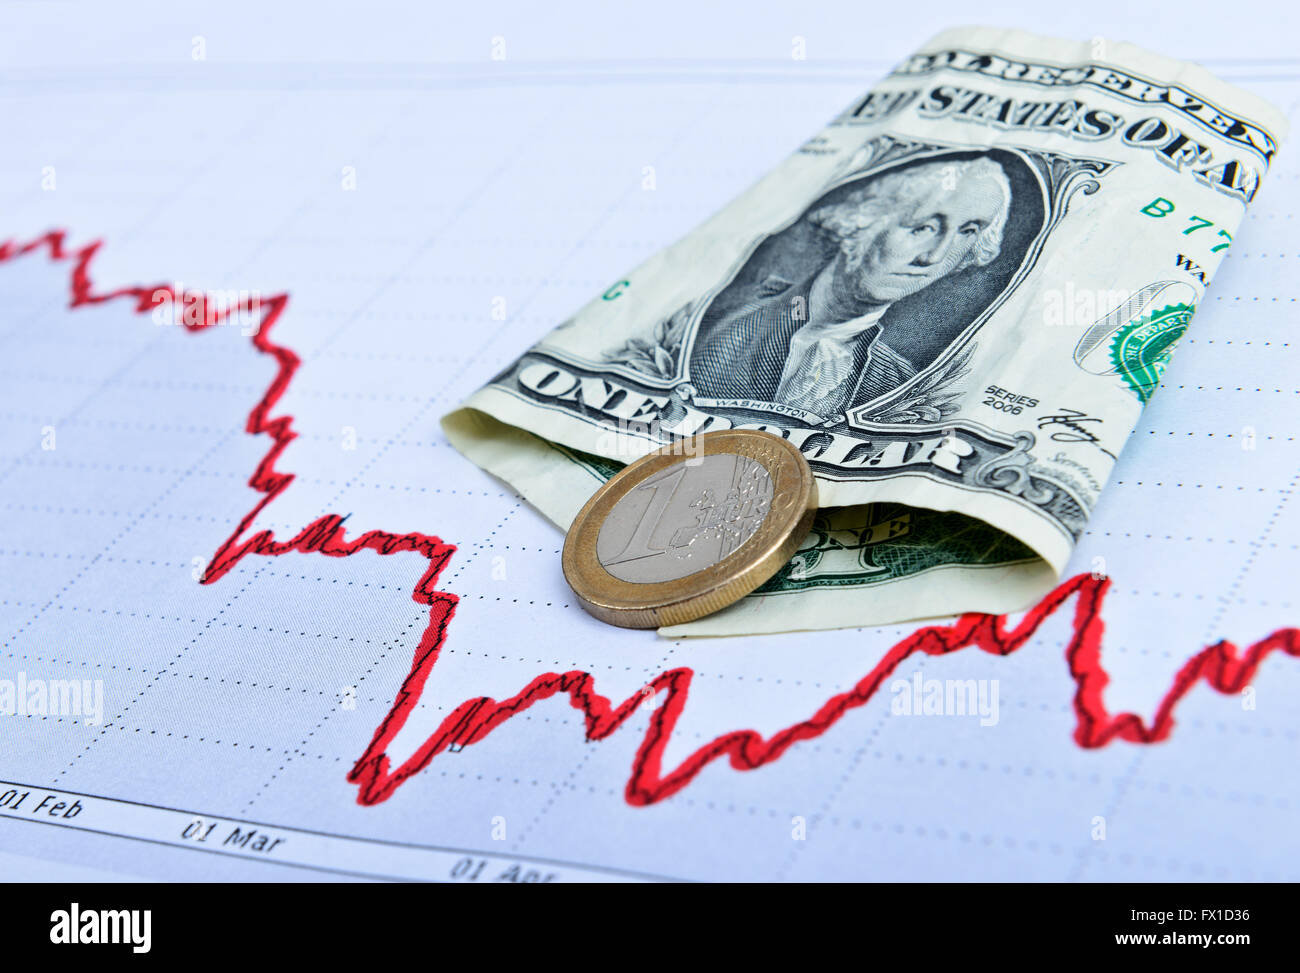 Dollars drawn chart. Business concept. Toned image - Stock Image